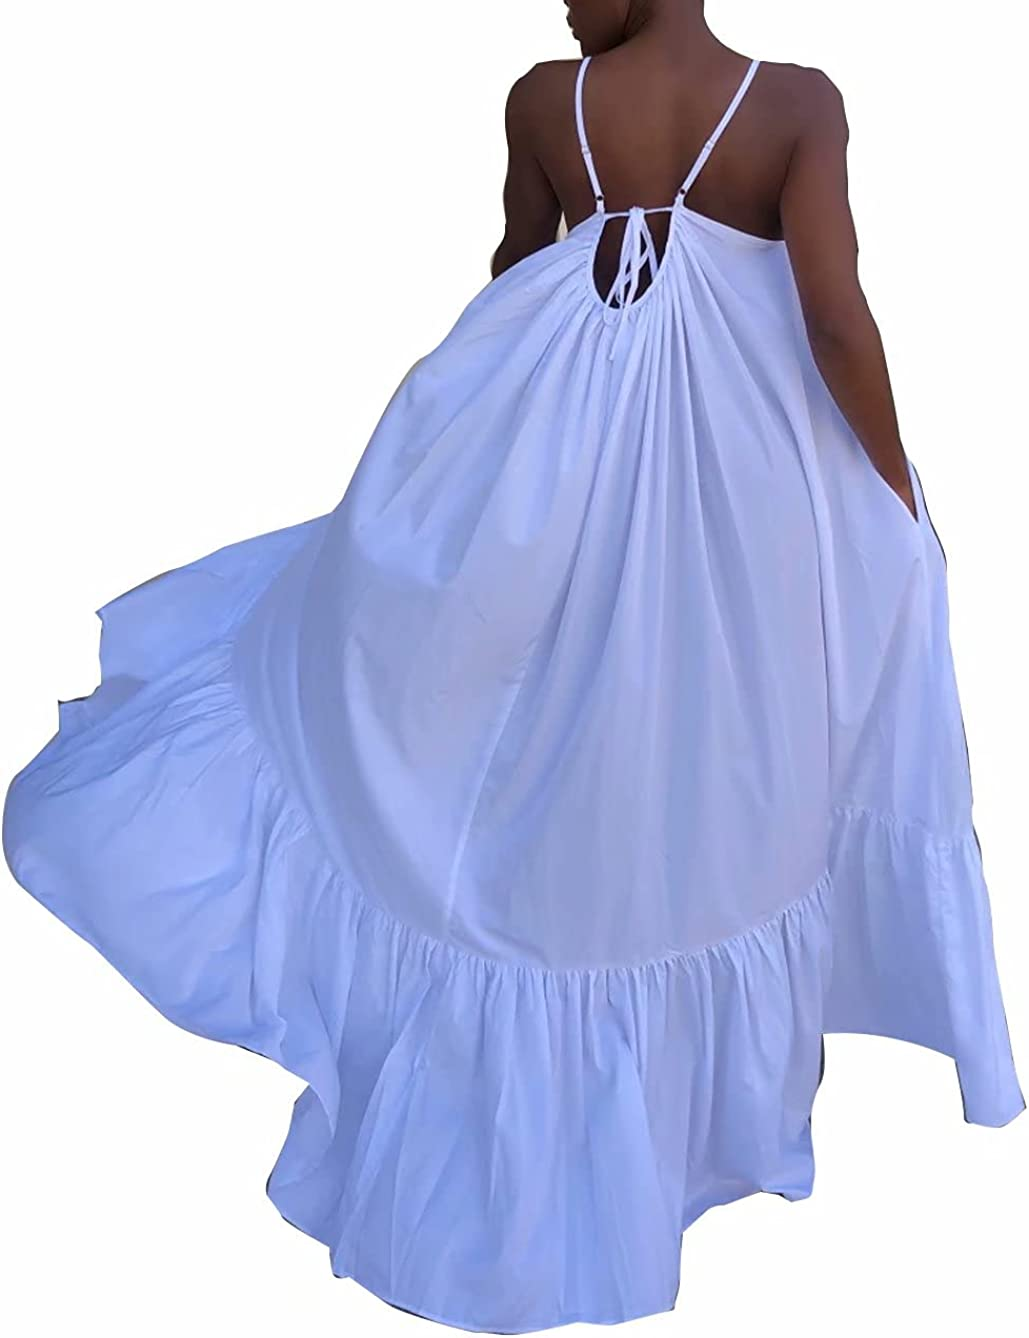 Mintsnow Summer Dresses for Women Spaghetti Strap Lace Up Ruffle Hem Loose Party Beach Flowy Maxi Dress with Pocket